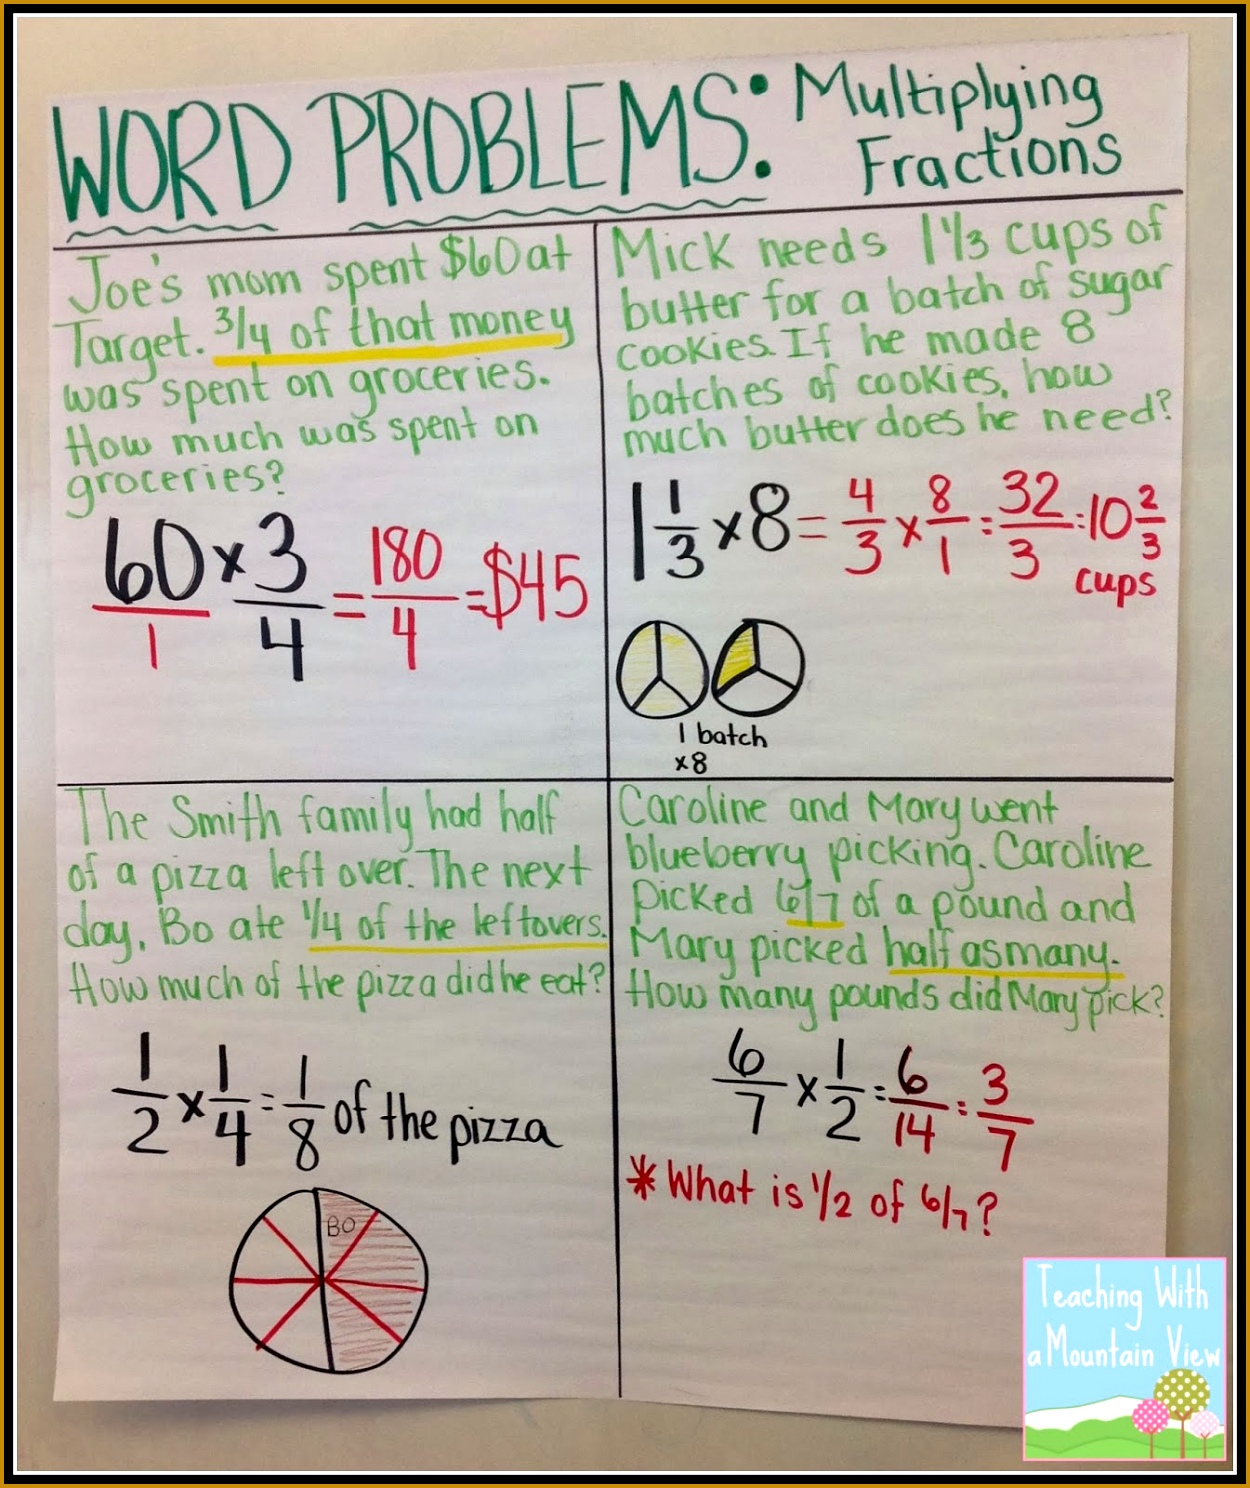 5 Multiplying And Dividing Fractions Worksheets